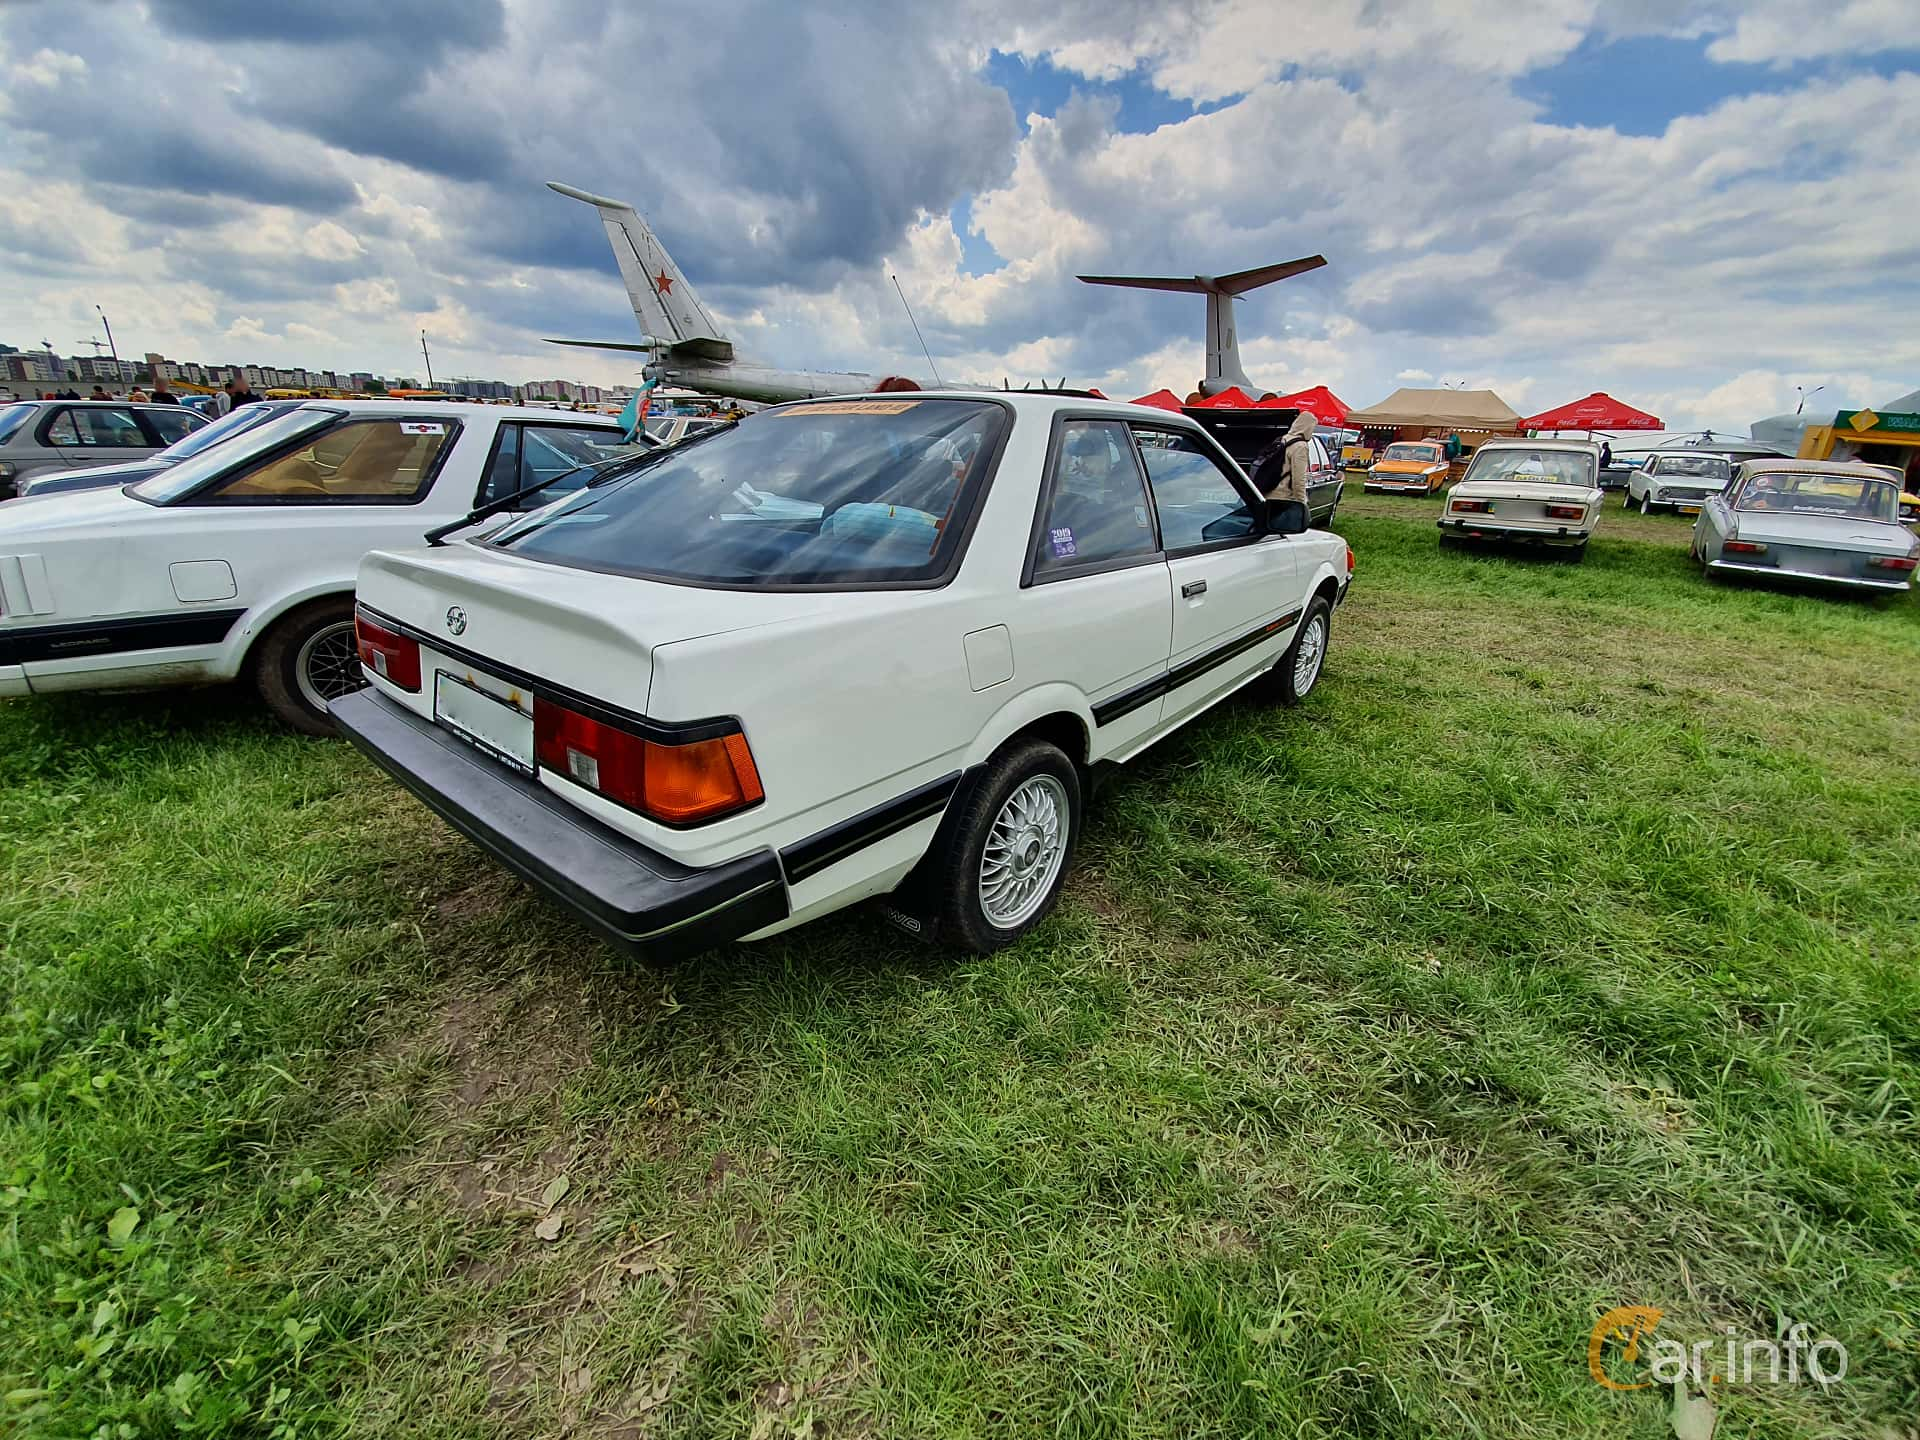 Subaru Leone Coupé 1.8 4WD Automatic, 98hp, 1986 at Old Car Land no.1 2019